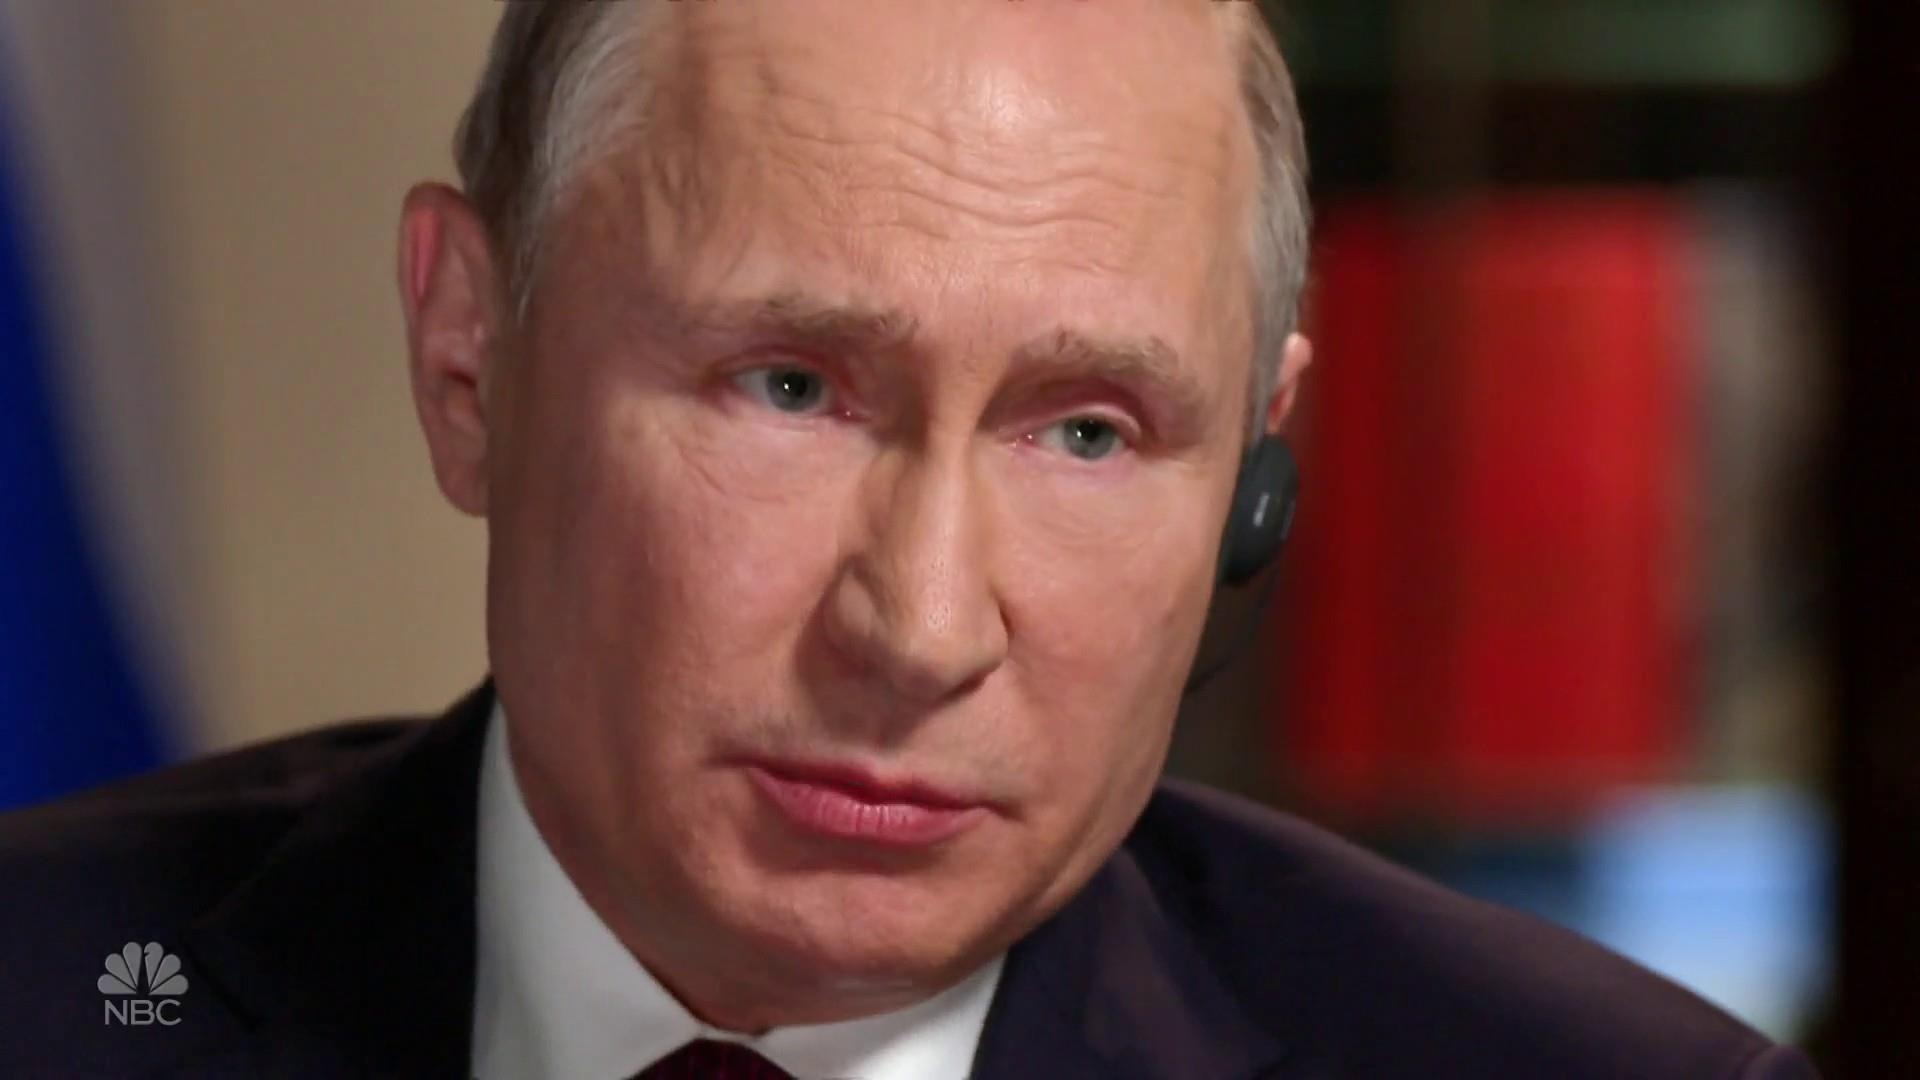 Watch Megyn Kelly's extended interview with Russian President Vladimir Putin in Kaliningrad